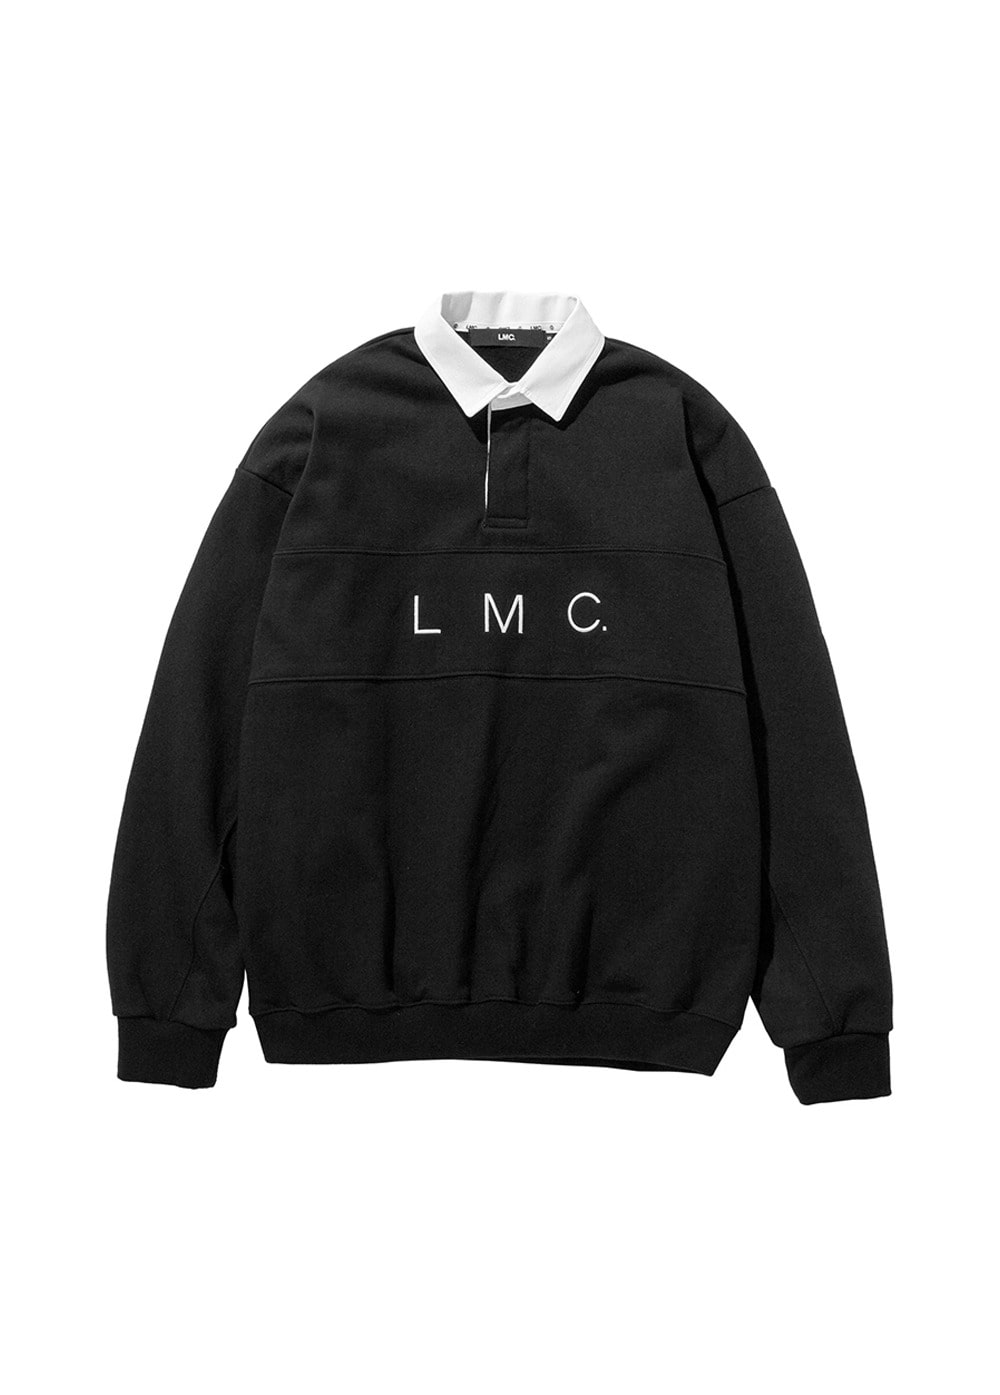 LMC RUGBY OVERSIZED SWEATSHIRT black